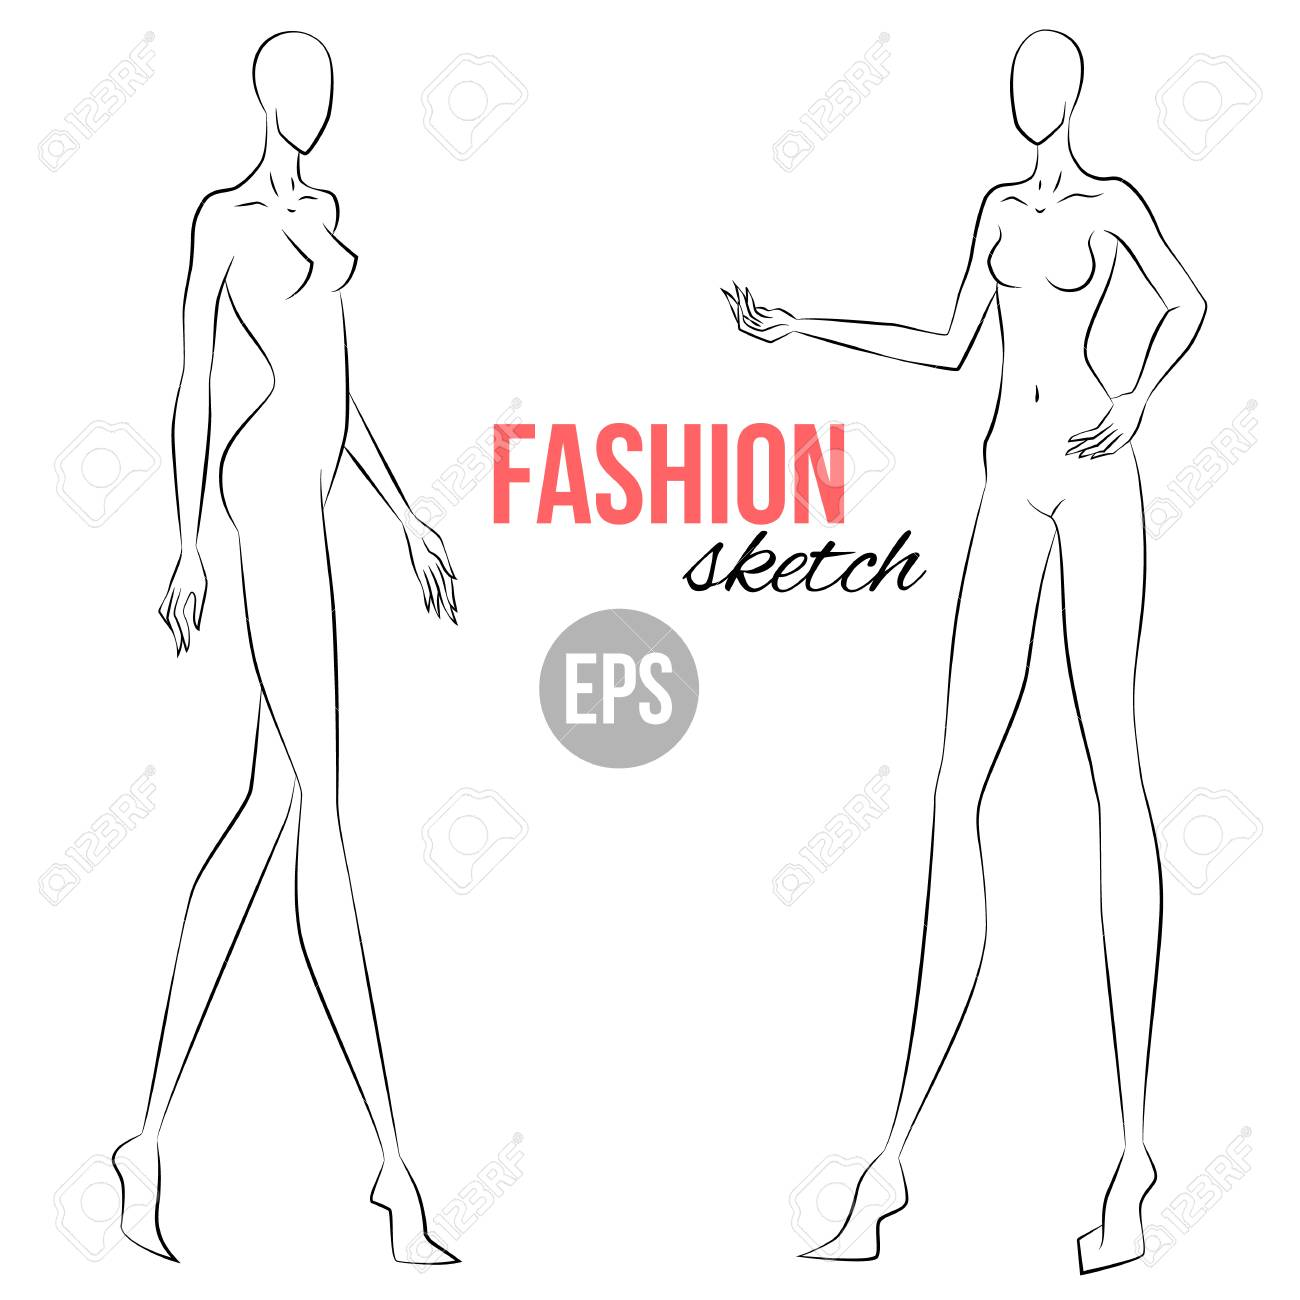 Woman S Figure Sketch Different Poses Template For Drawing Royalty Free Cliparts Vectors And Stock Illustration Image 97069516